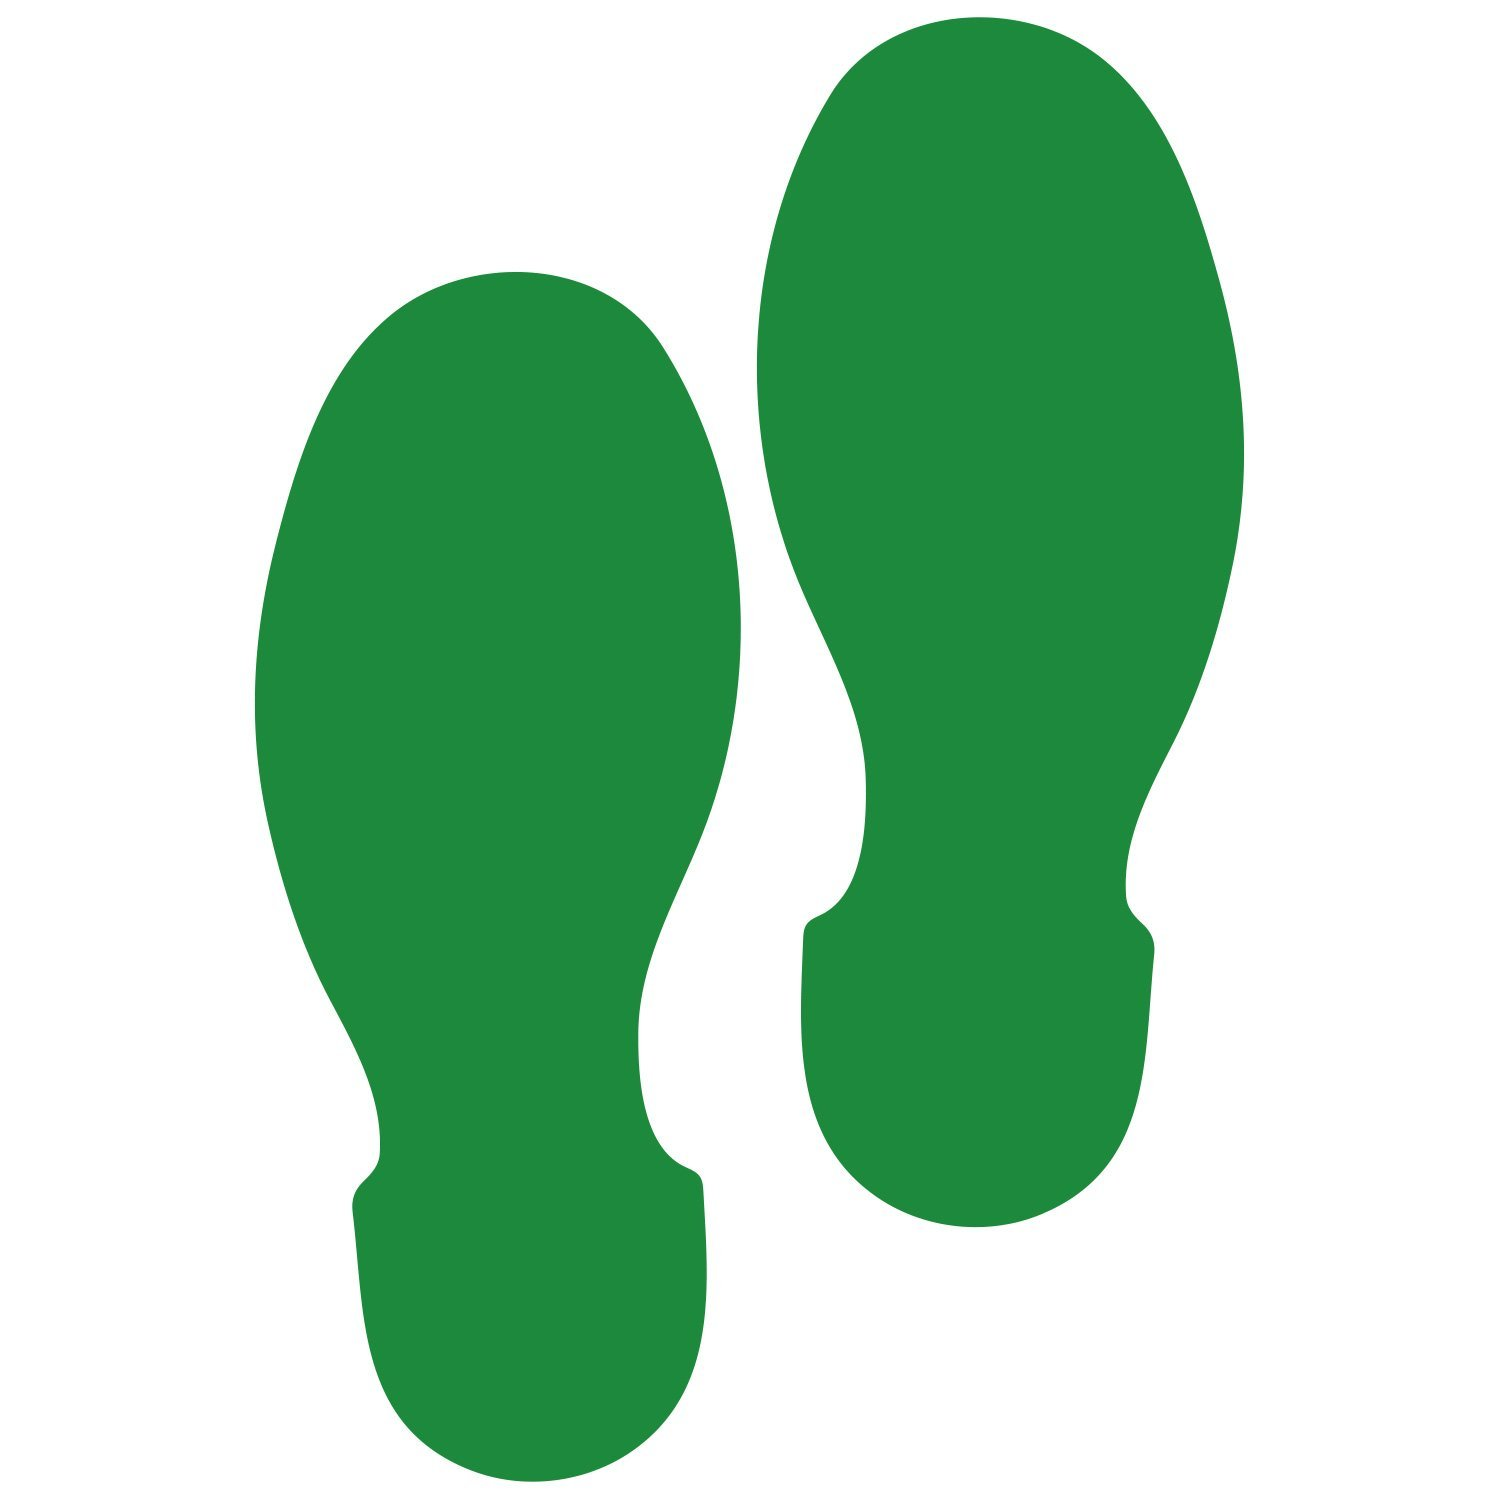 LiteMark 9 Inch Green Shoe Print Decal Stickers for Floors and Walls - Pack of 12 (6 Pairs)